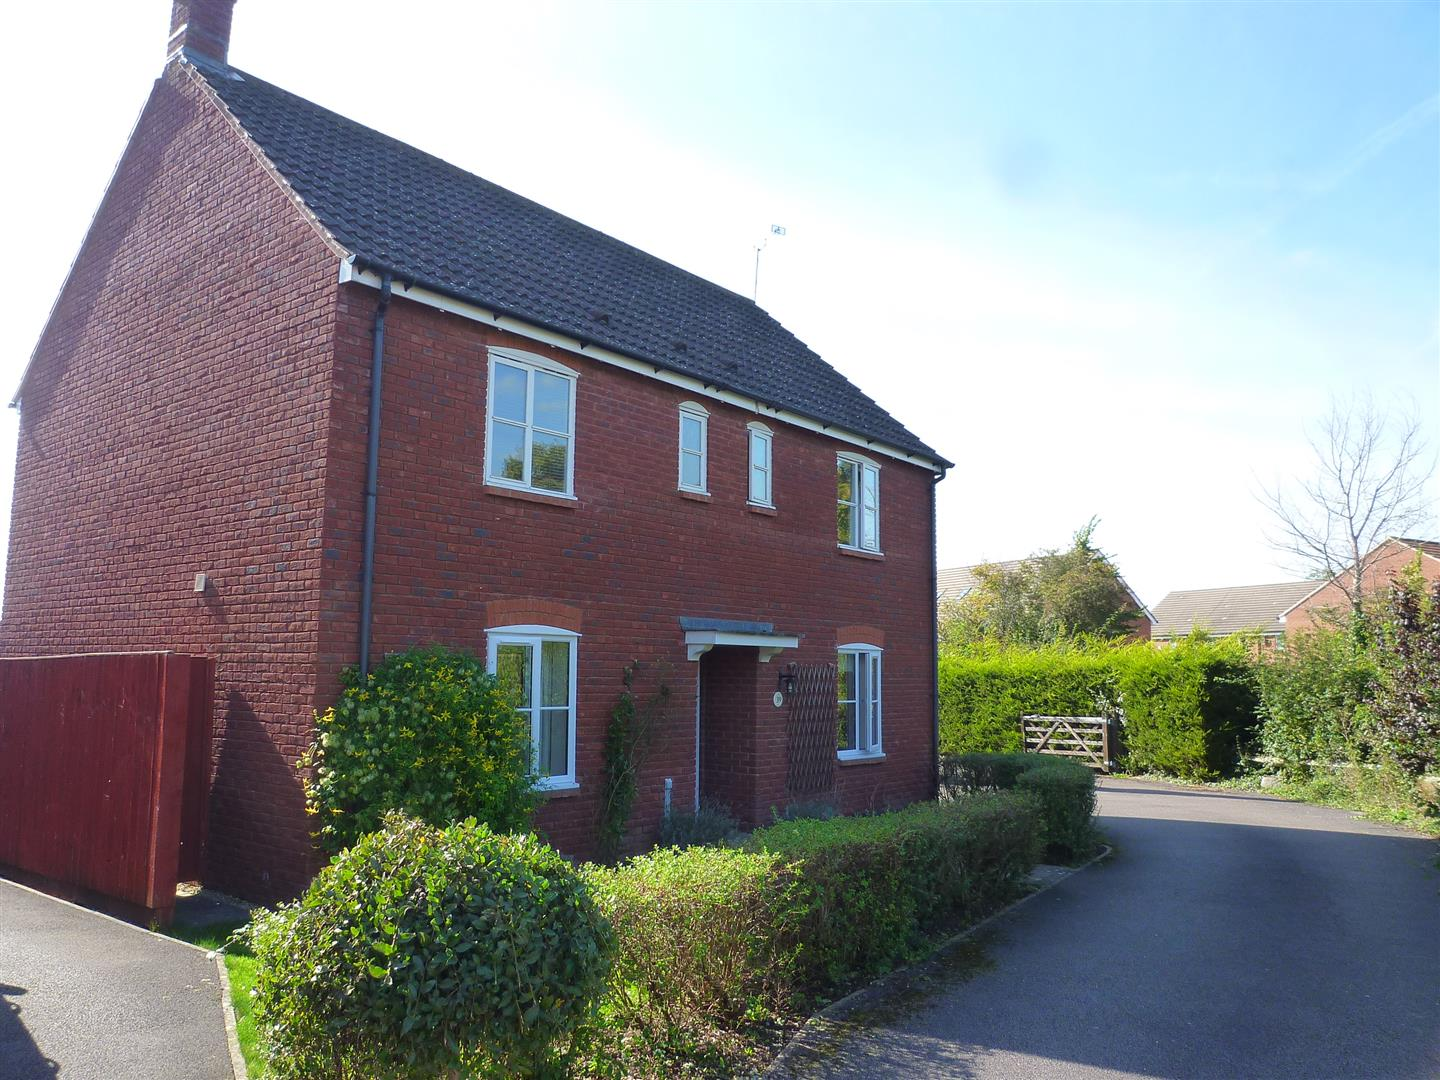 4 Bedrooms Detached House for sale in Cresswell Drive, Hilperton, Trowbridge